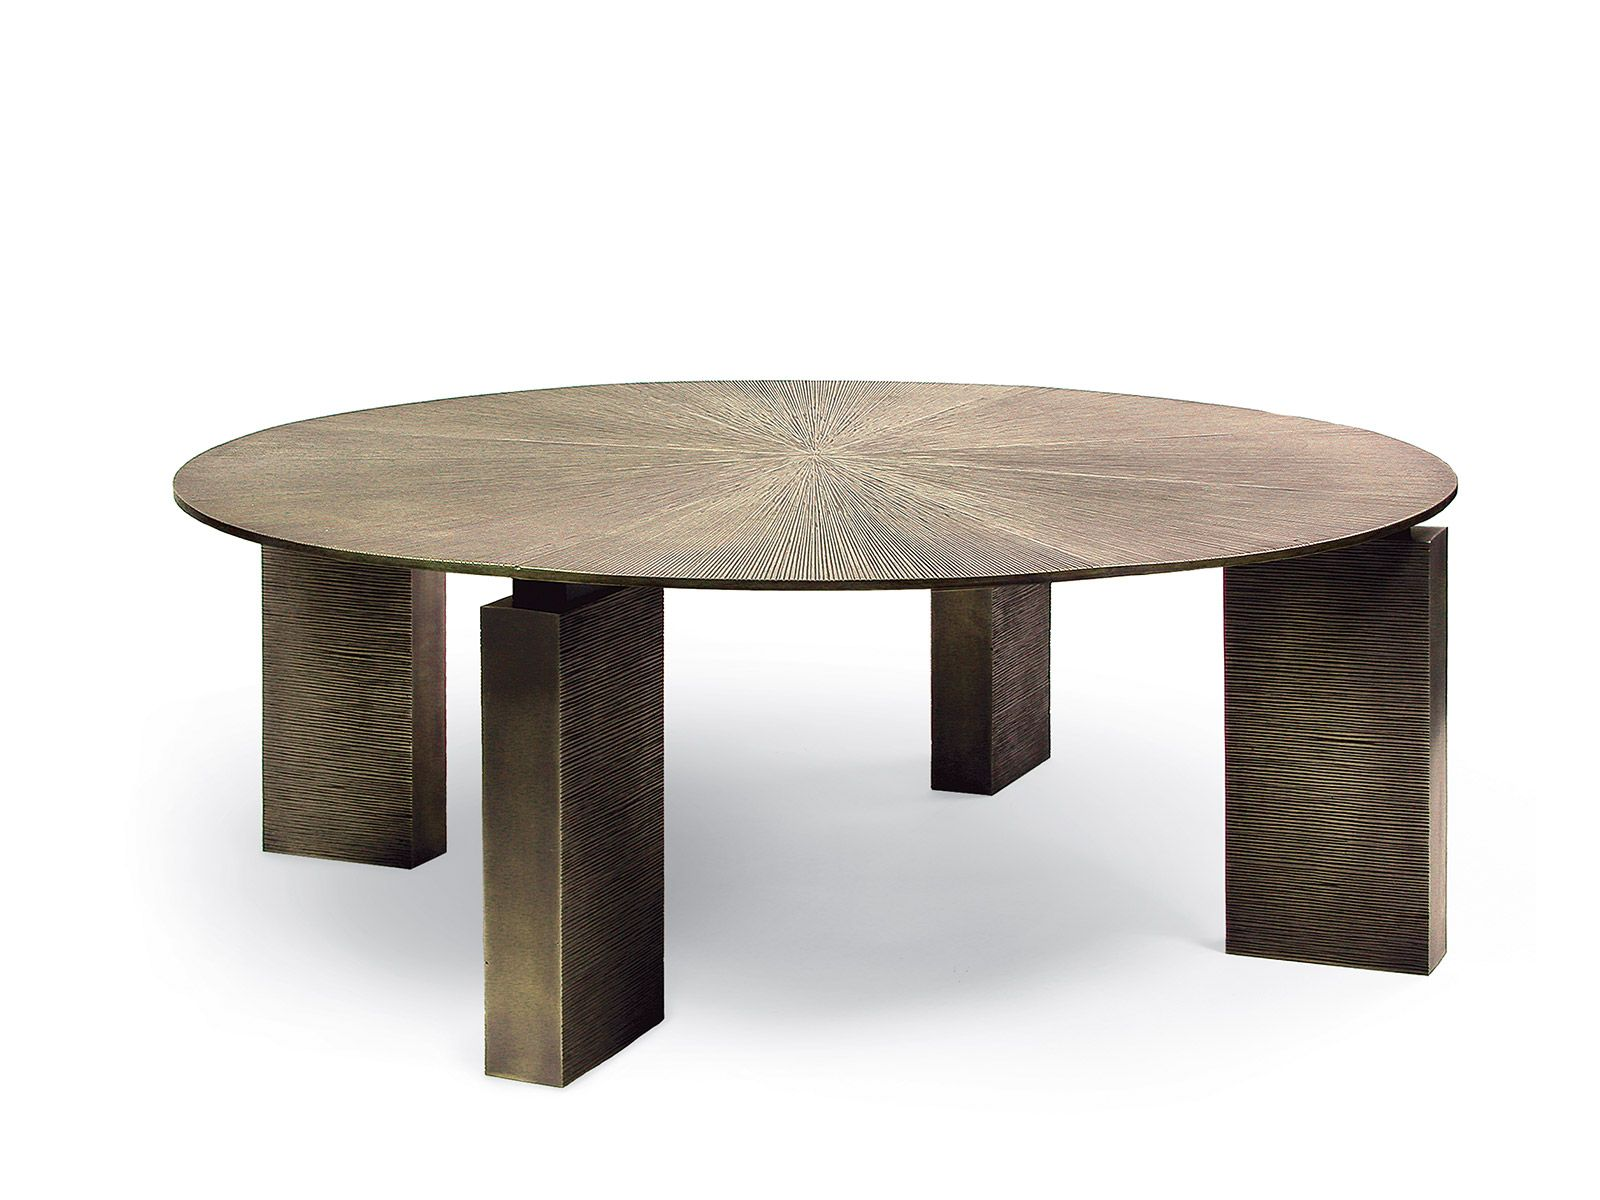 Tuell Amp Reynolds Carmel Table De Sousa Hughes Coffee Table Coffee Table Inspiration Transitional Coffee Tables [ 1200 x 1600 Pixel ]